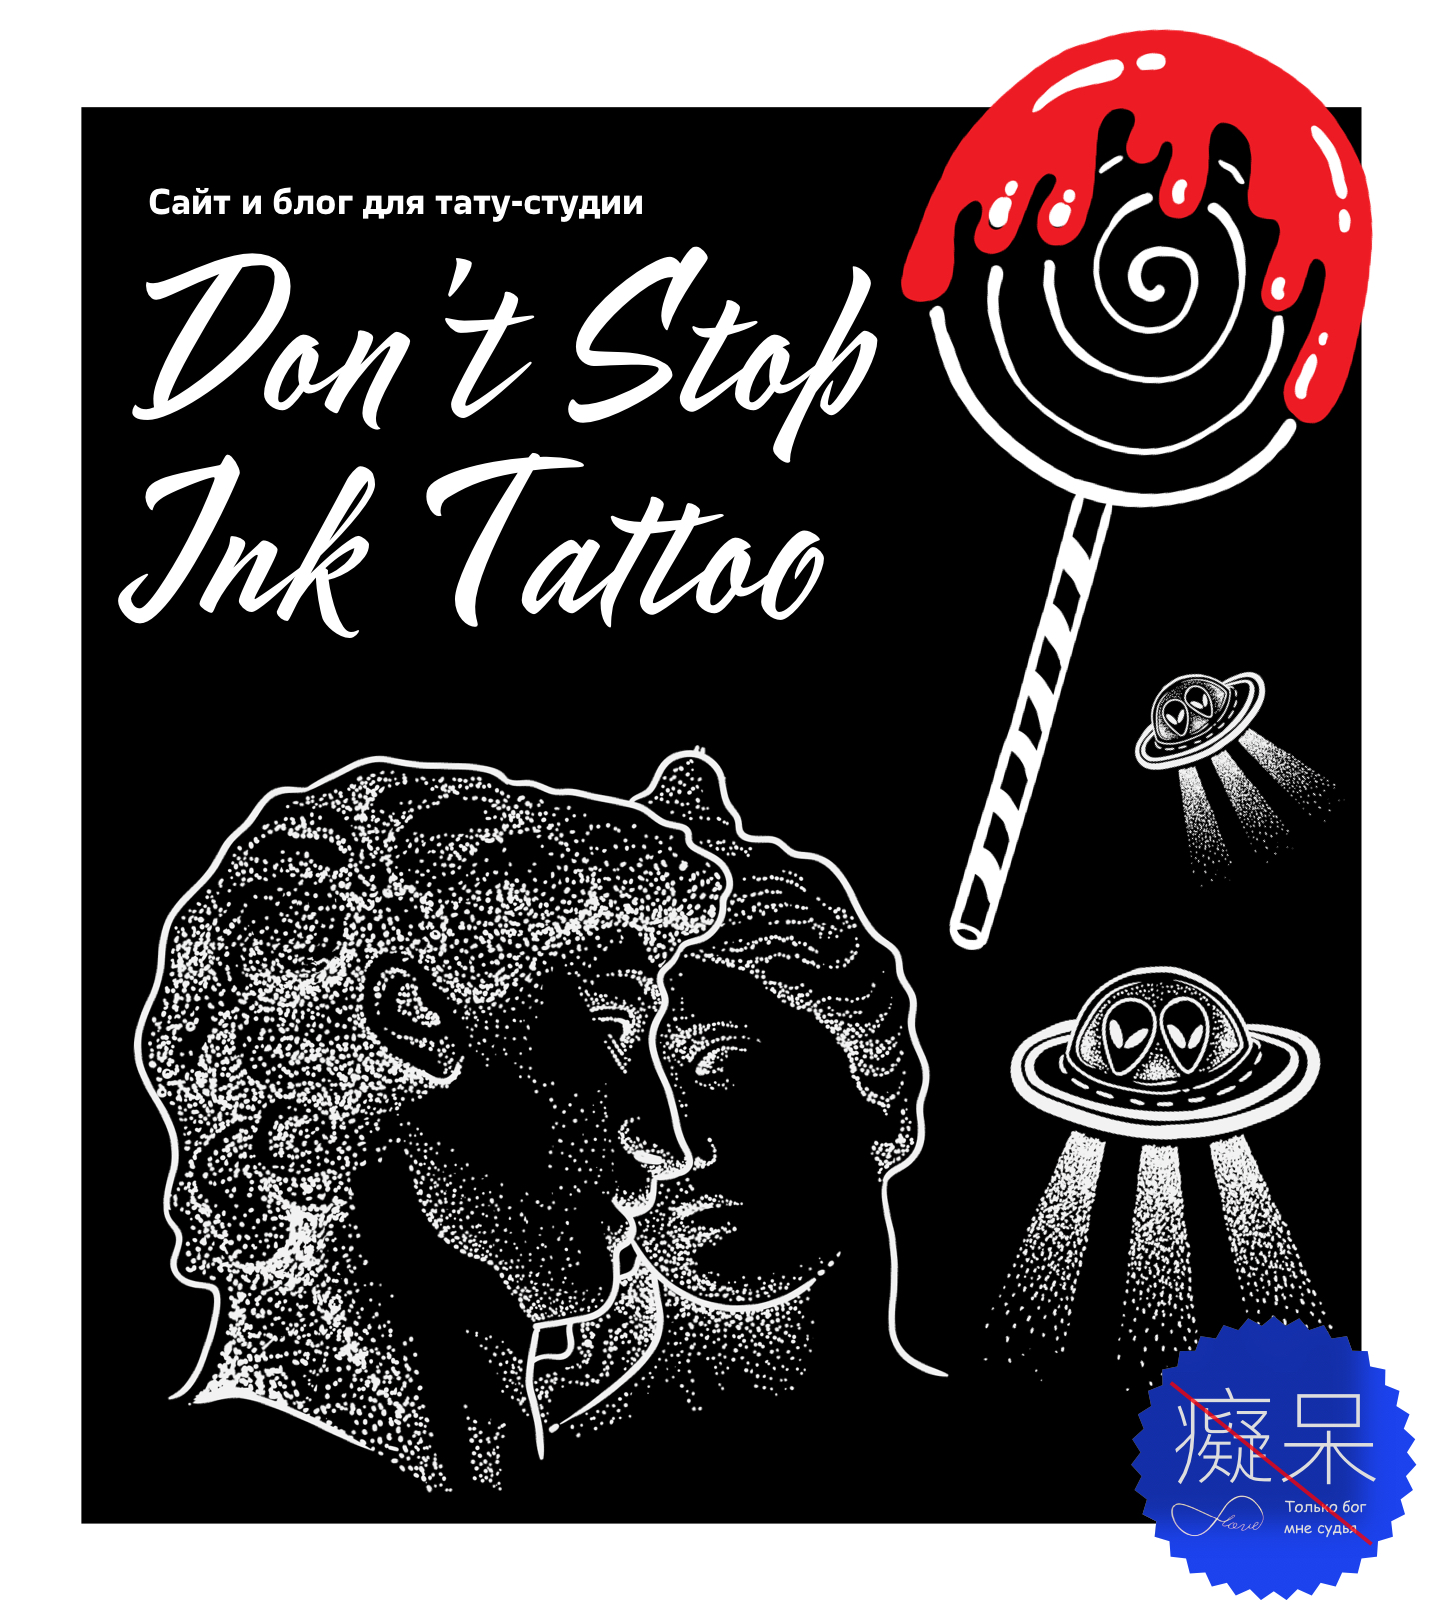 Сайт тату-студии Don't Stop Ink Tattoo картинка